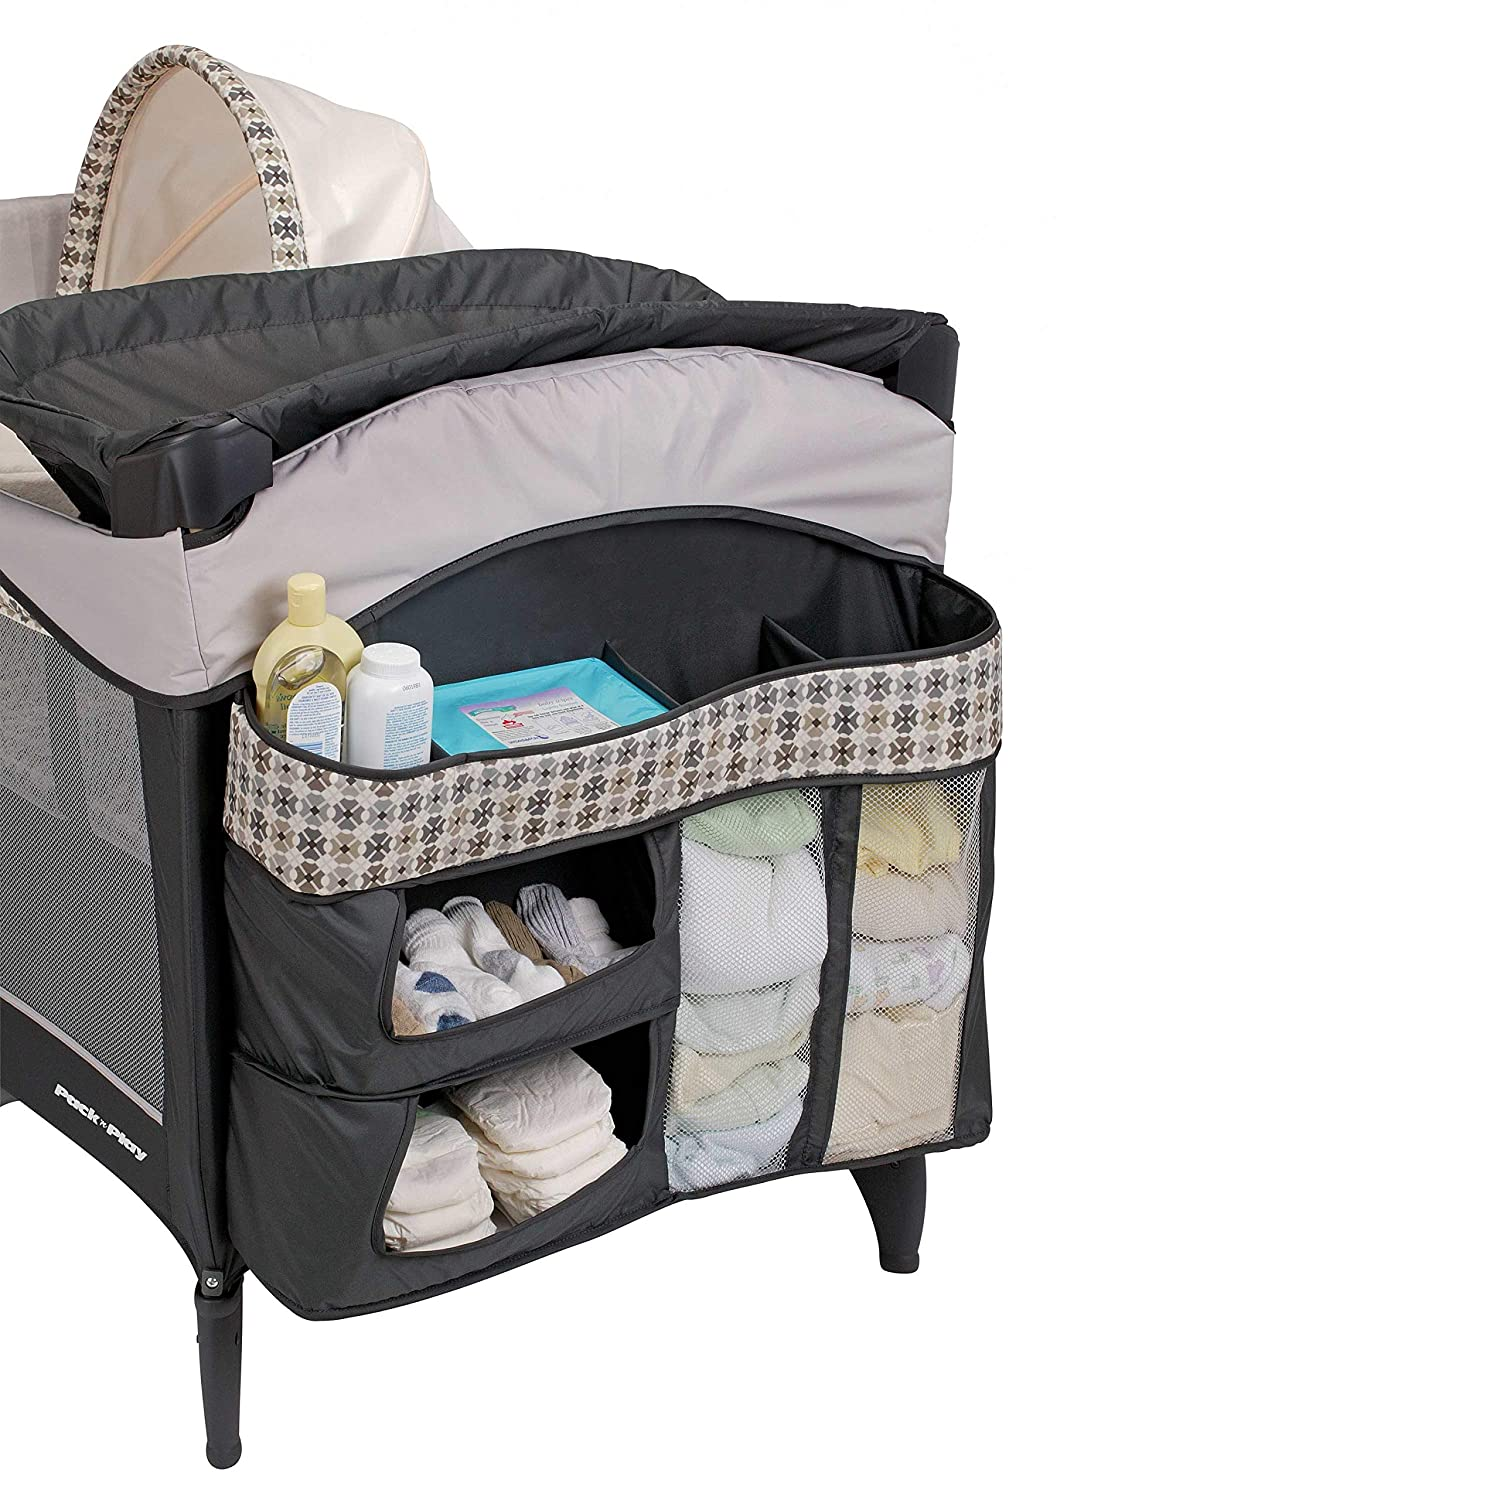 Graco Pack 'n Play Playard   Includes Elite Newborn Napper, Full-Size Infant Bassinet, and Diaper Changer, Vance